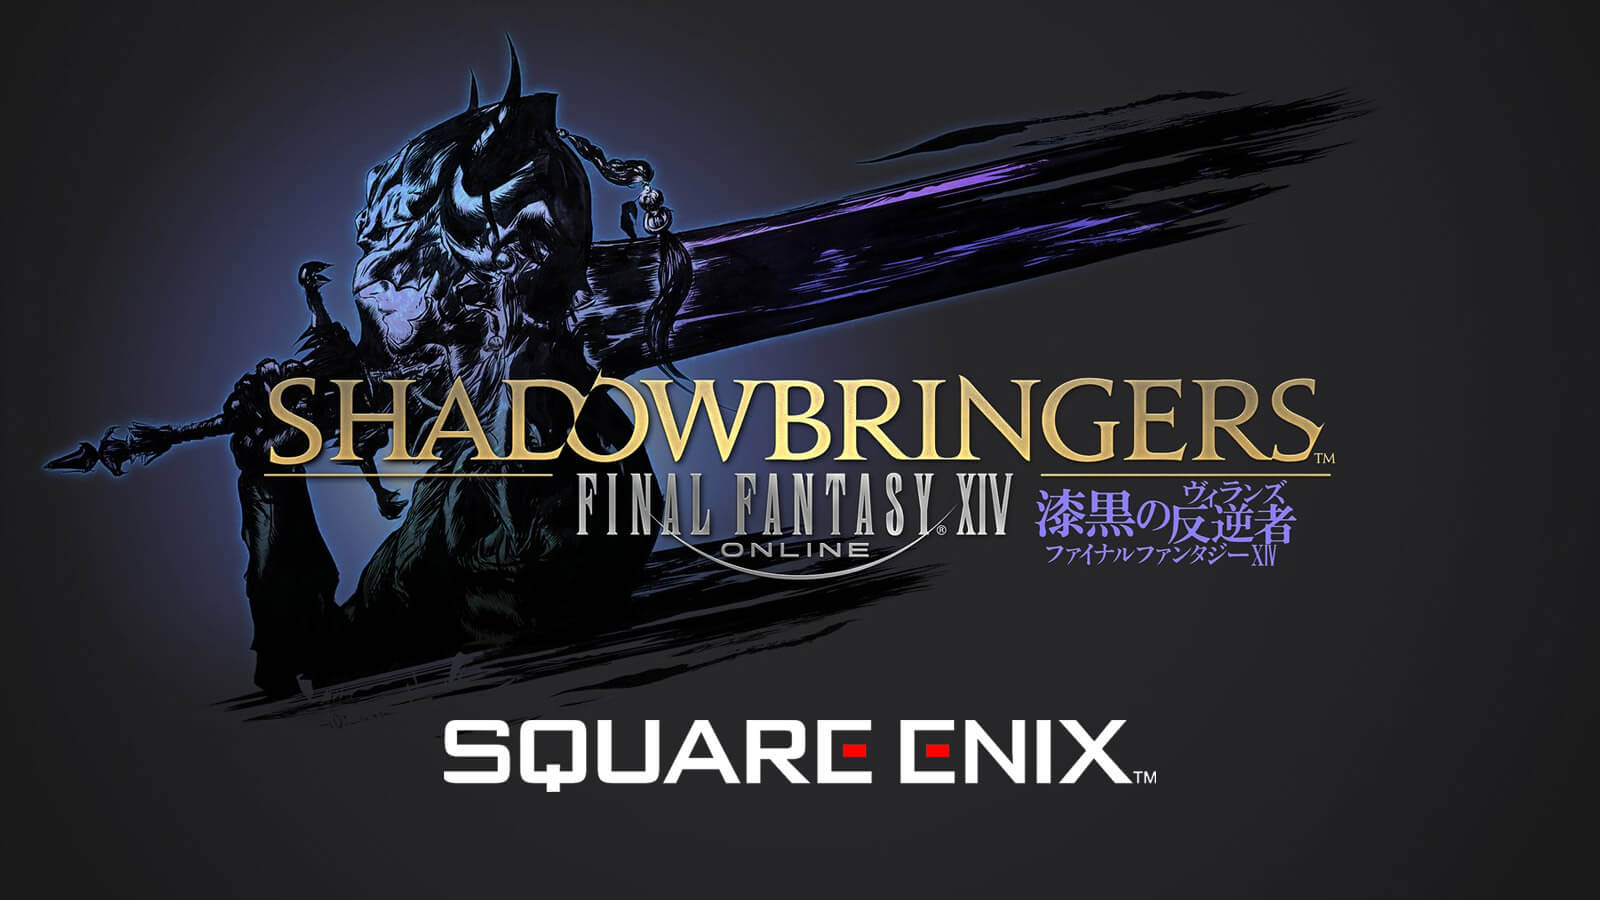 Final Fantasy XIV: Shadowbringers Expansion Announced